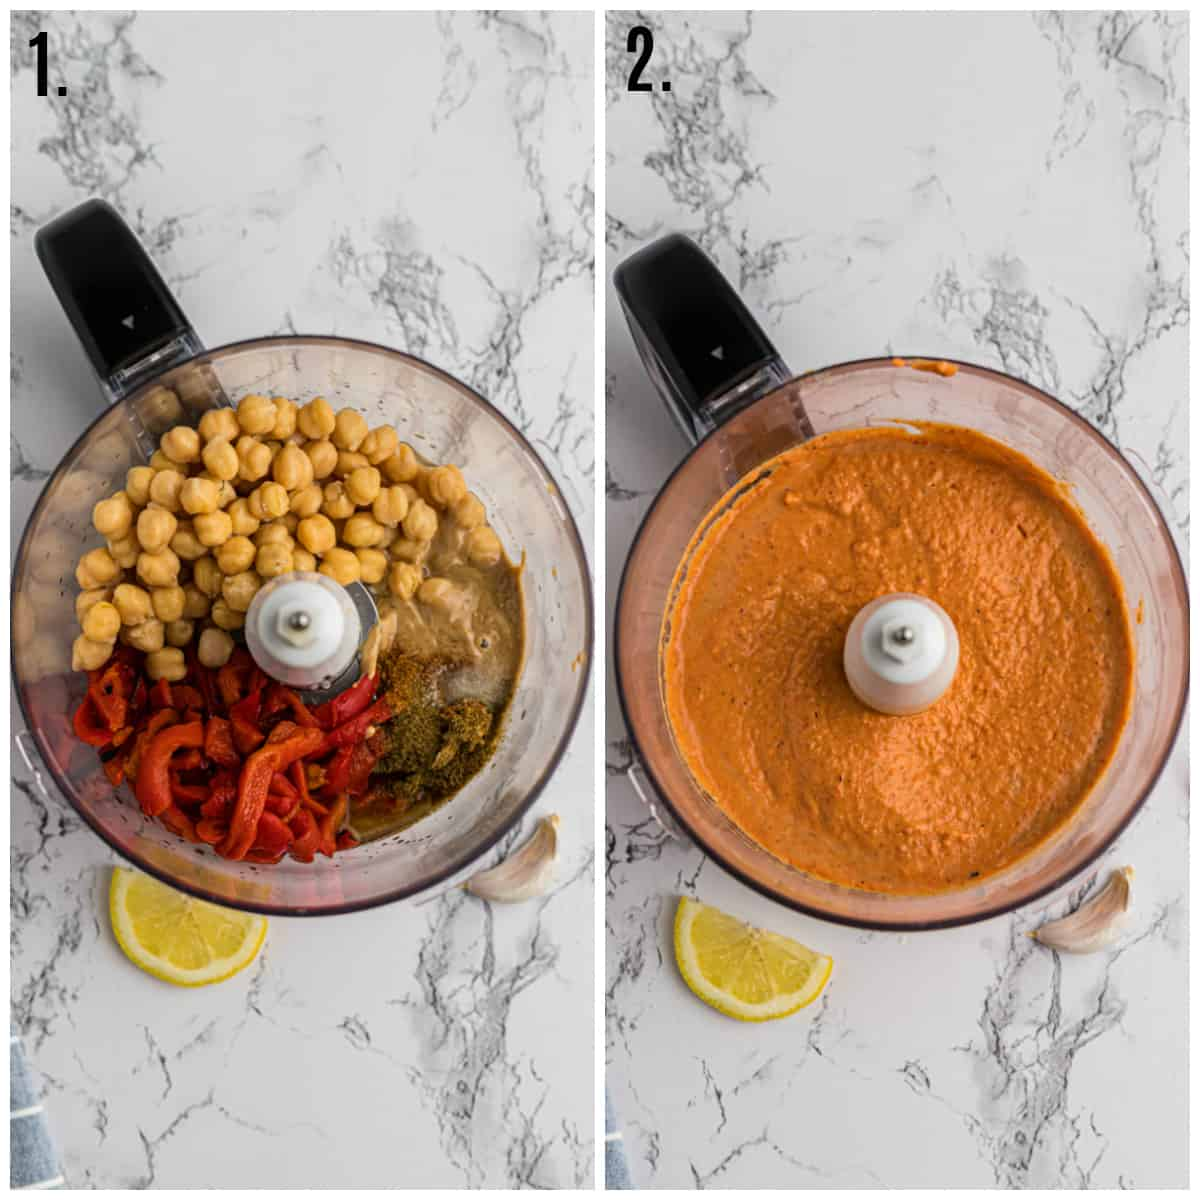 Step by step photos on how to make Roasted Red Pepper Hummus